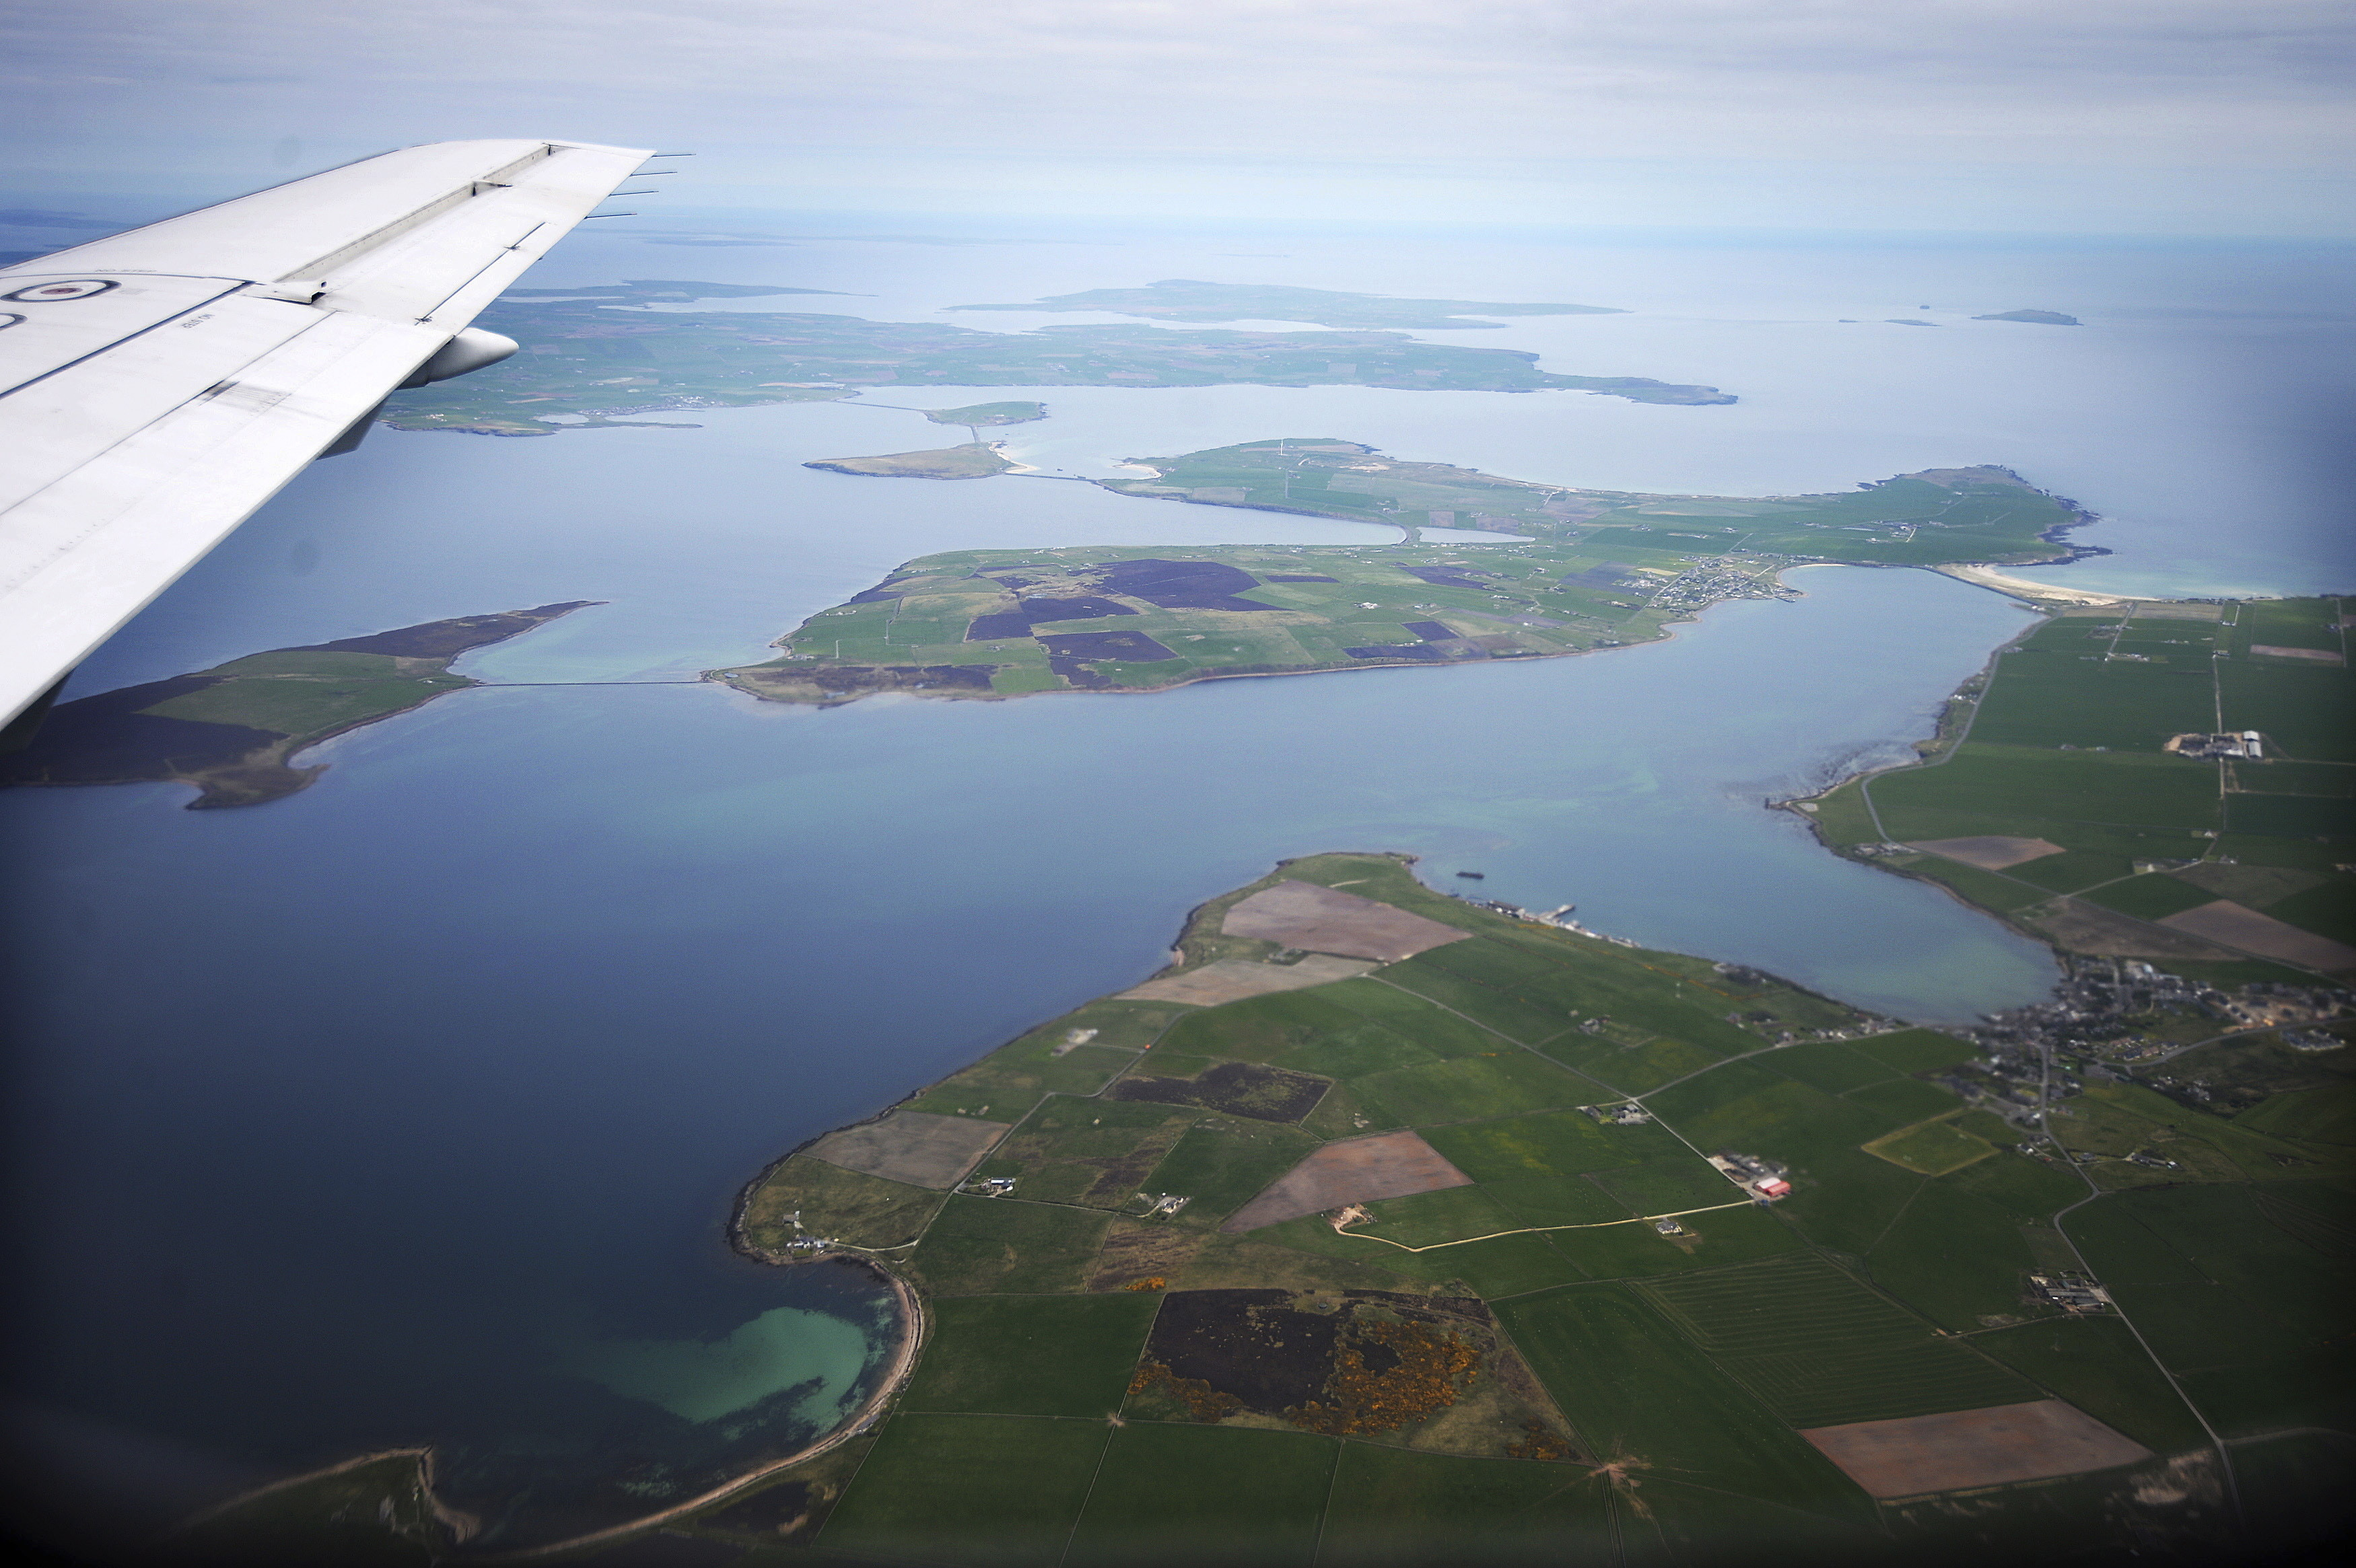 An aerial view of the Orkney Islands, Scotland May 3, 2014. During both World Wars, Scapa Flow was an important British naval base, and the site of significant loss of life. Following the end of World War One, 74 German warships were interned there, and on June 21, 1919 most were deliberately sunk, or scuttled, at the orders of German Rear Admiral Ludwig Von Reuter, who mistakenly thought that the Armistice had broken down and wanted to prevent the British from using the ships. Now Scapa Flow is a popular site for divers, who explore the few wrecks that still remain at the bottom. The year 2014 marks the 100th anniversary of the start of the First World War. Picture taken May 3, 2014. REUTERS/Nigel Roddis (BRITAIN - Tags: CONFLICT ANNIVERSARY ENVIRONMENT SOCIETY MARITIME) ATTENTION EDITORS: PICTURE 01 OF 28 FOR PACKAGE 'WWI - EXPLORING SUNKEN WARSHIPS'TO FIND ALL IMAGES SEARCH 'SCAPA FLOW' - GM1EA6J0S8B01